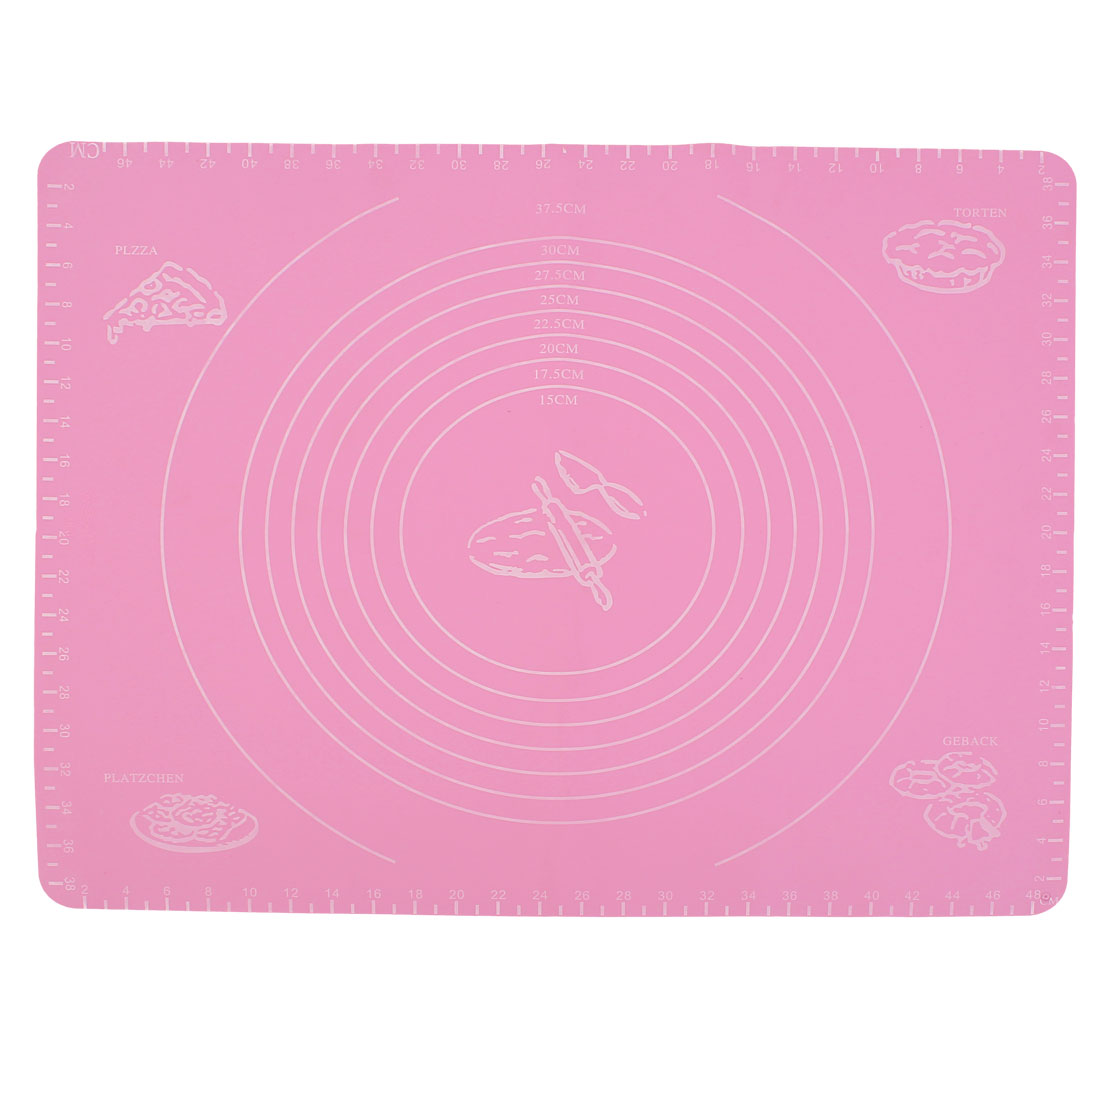 Graduated Pastry Cake Cookie Dough Nonstick Silicone Baking Mat Liner Sheet Pad